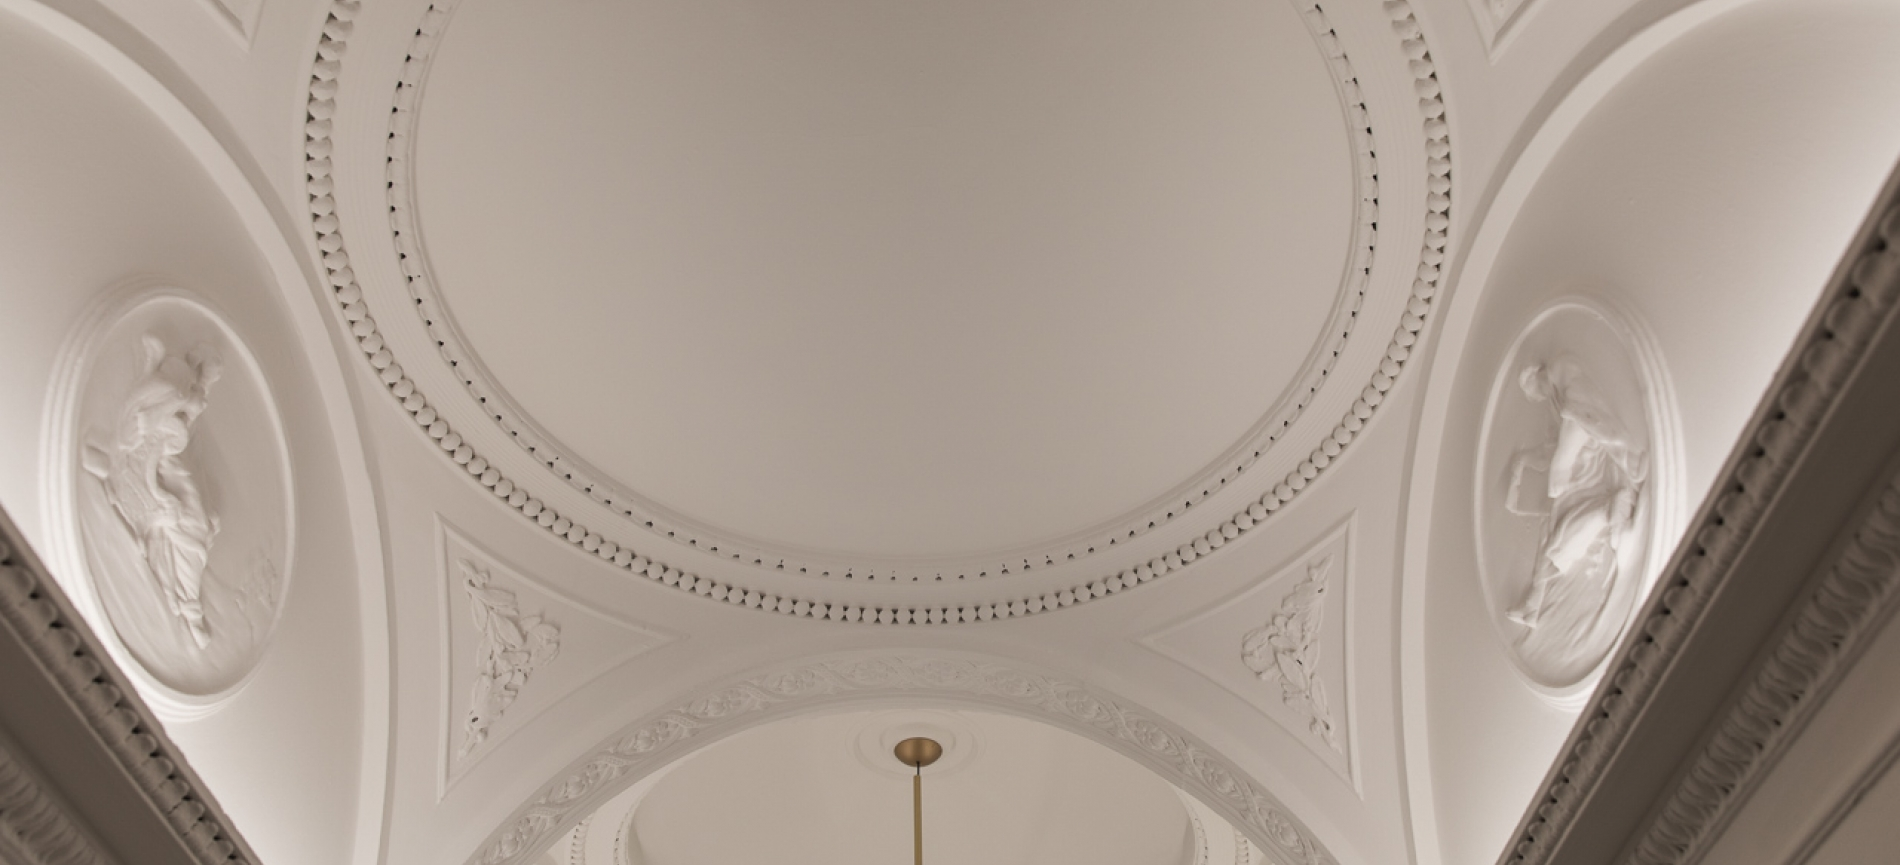 Ceiling at 54 Doughty Street